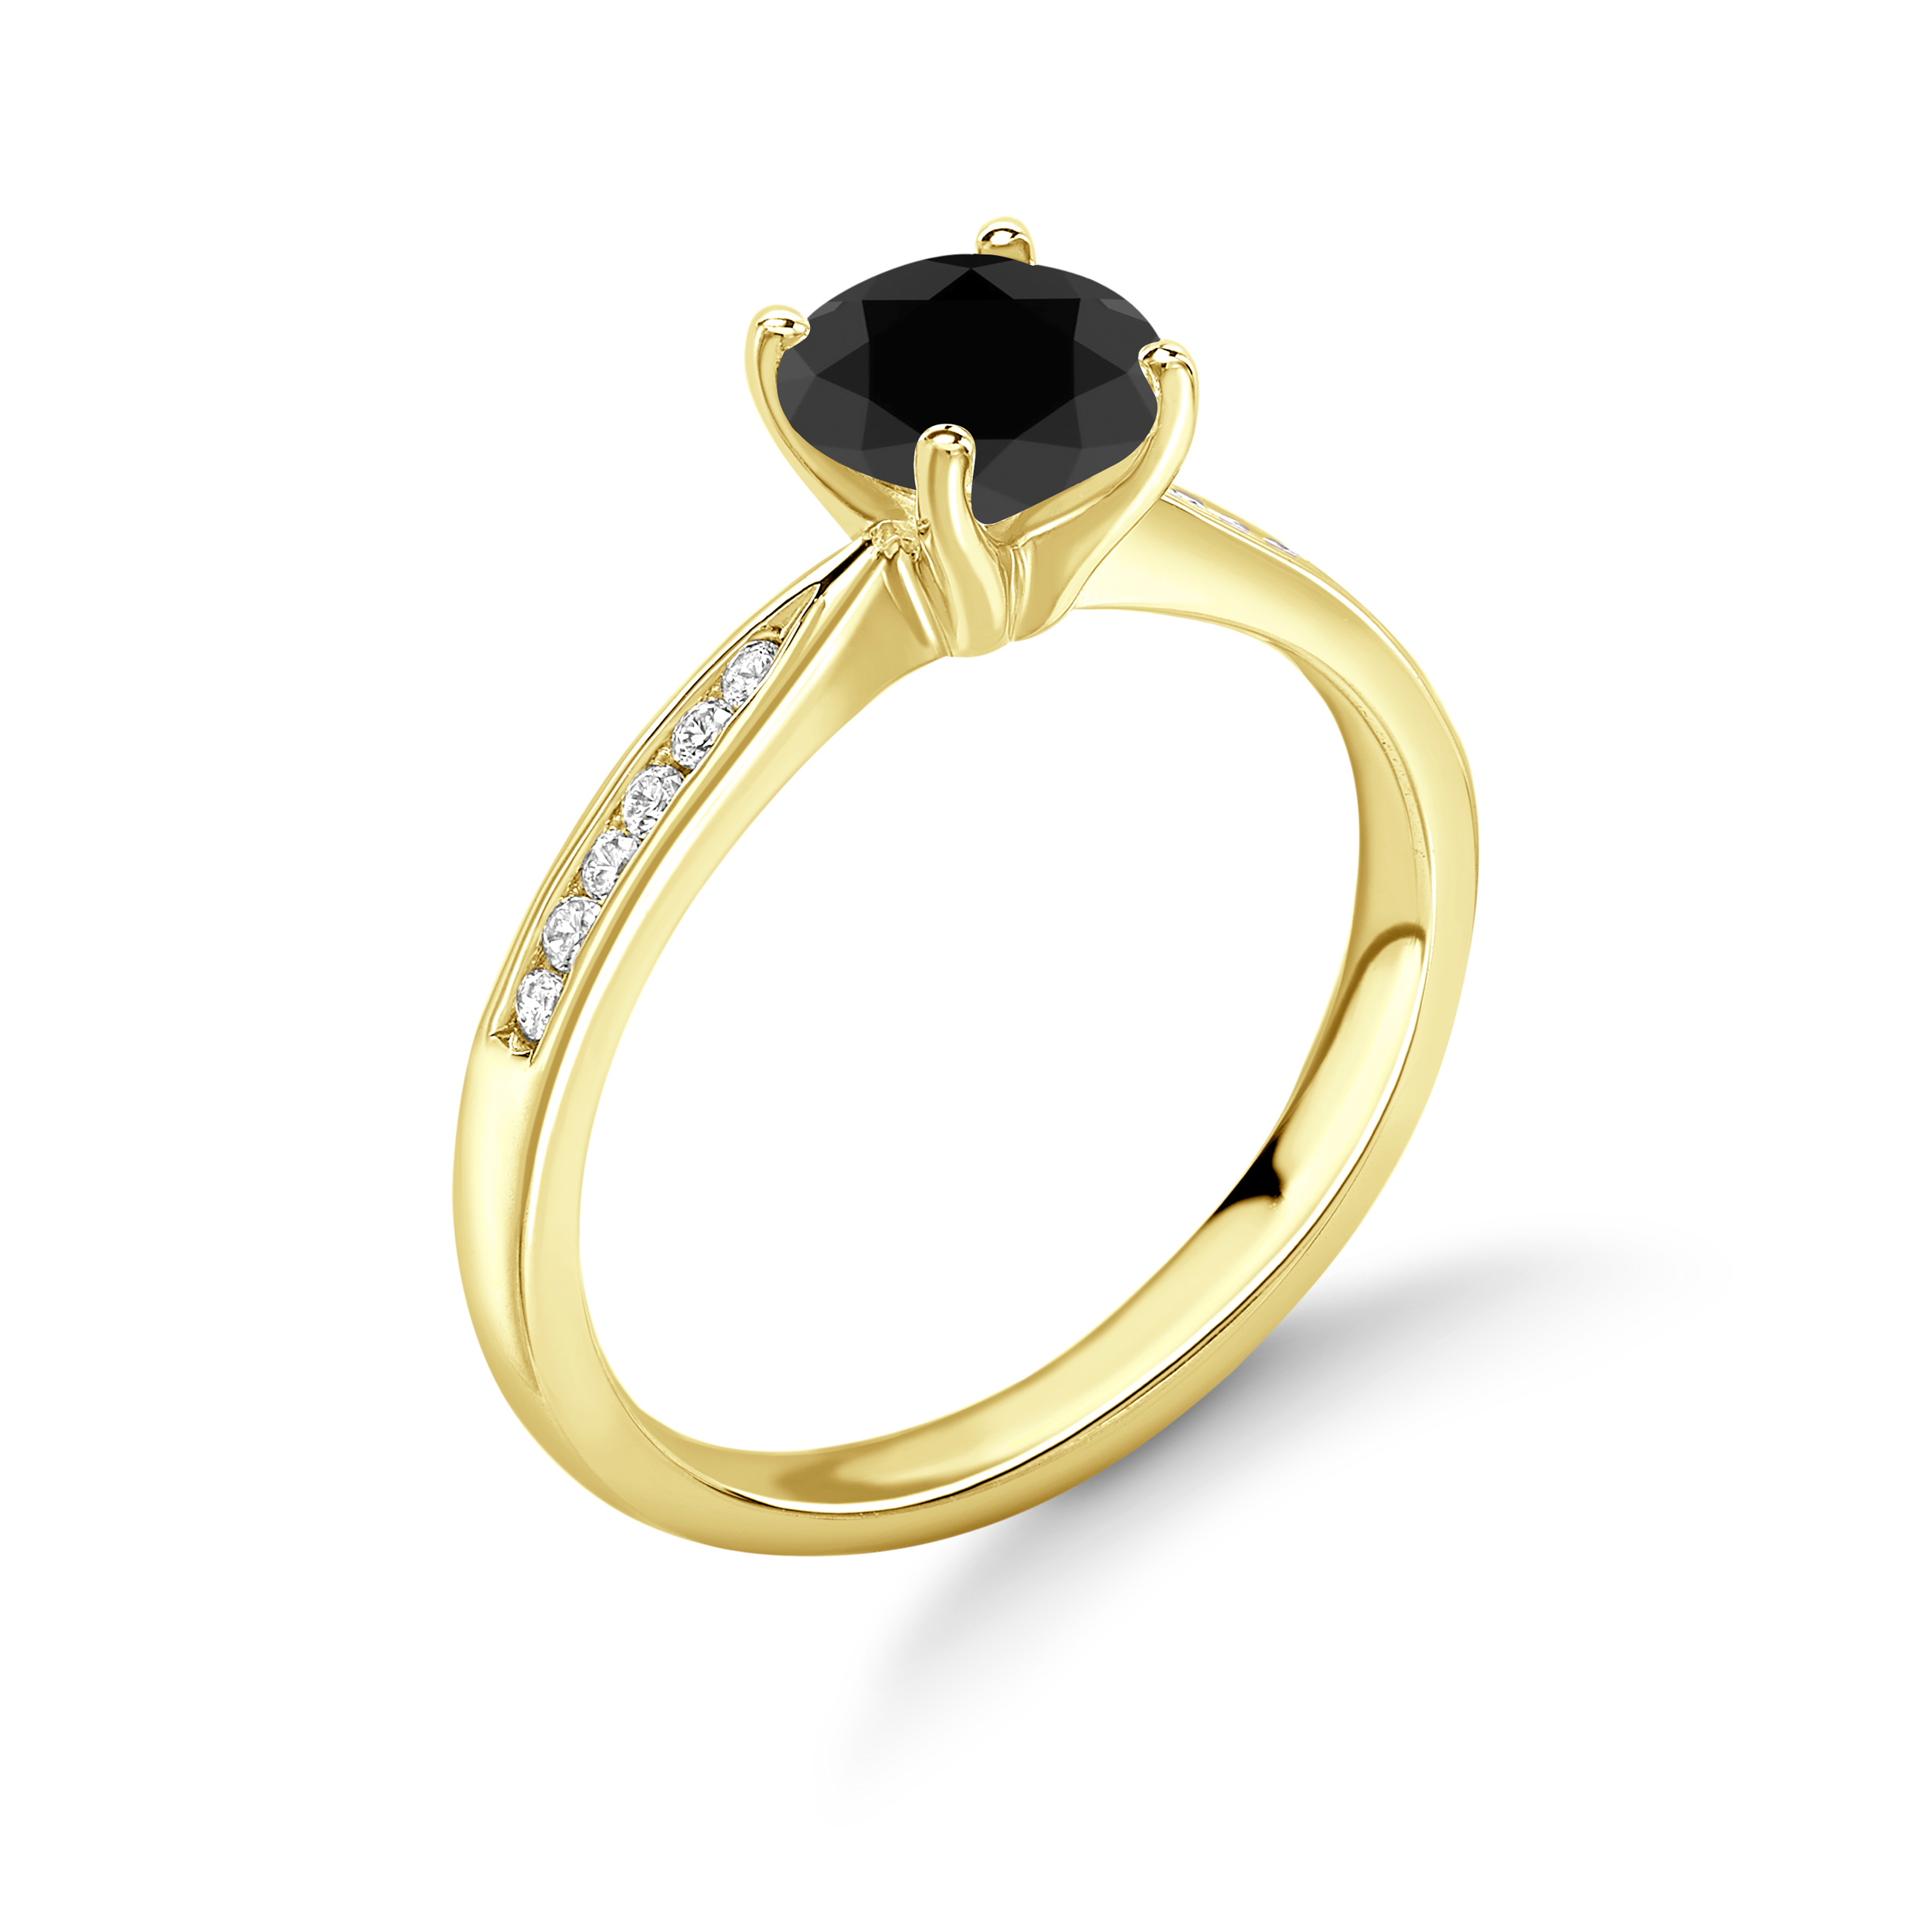 4 Claw Set Round Solitaire Black Diamond Ring in UK